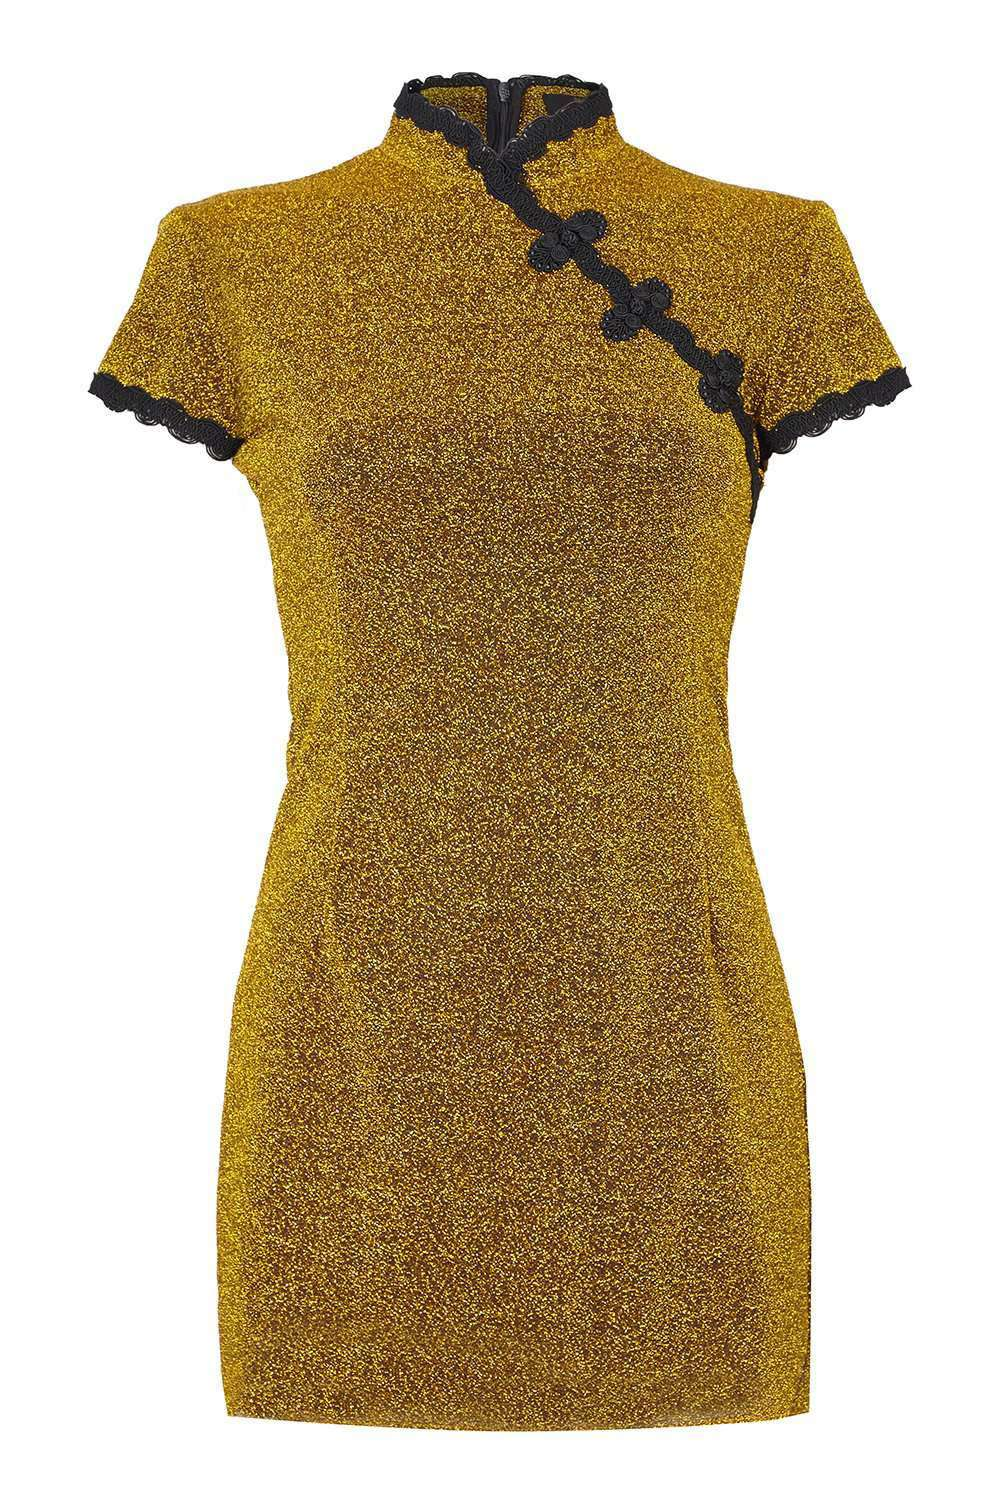 Suki Gold Lurex Dress